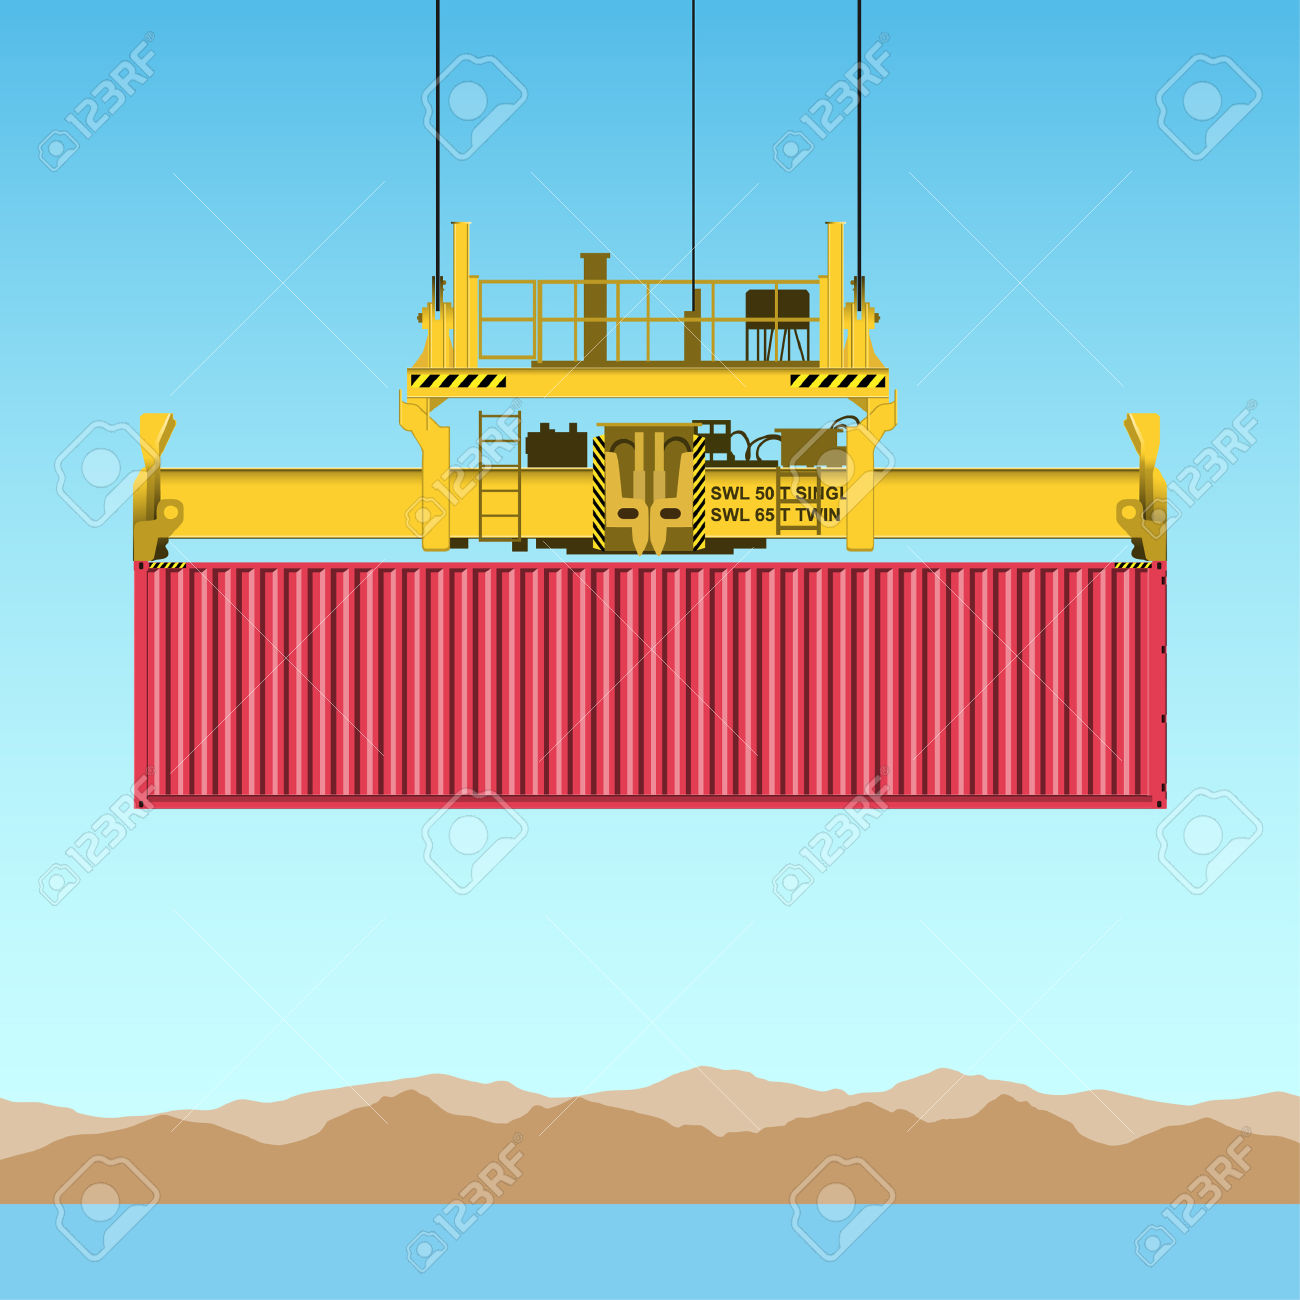 A Freight Containers On Crane At The Docks Royalty Free Cliparts.